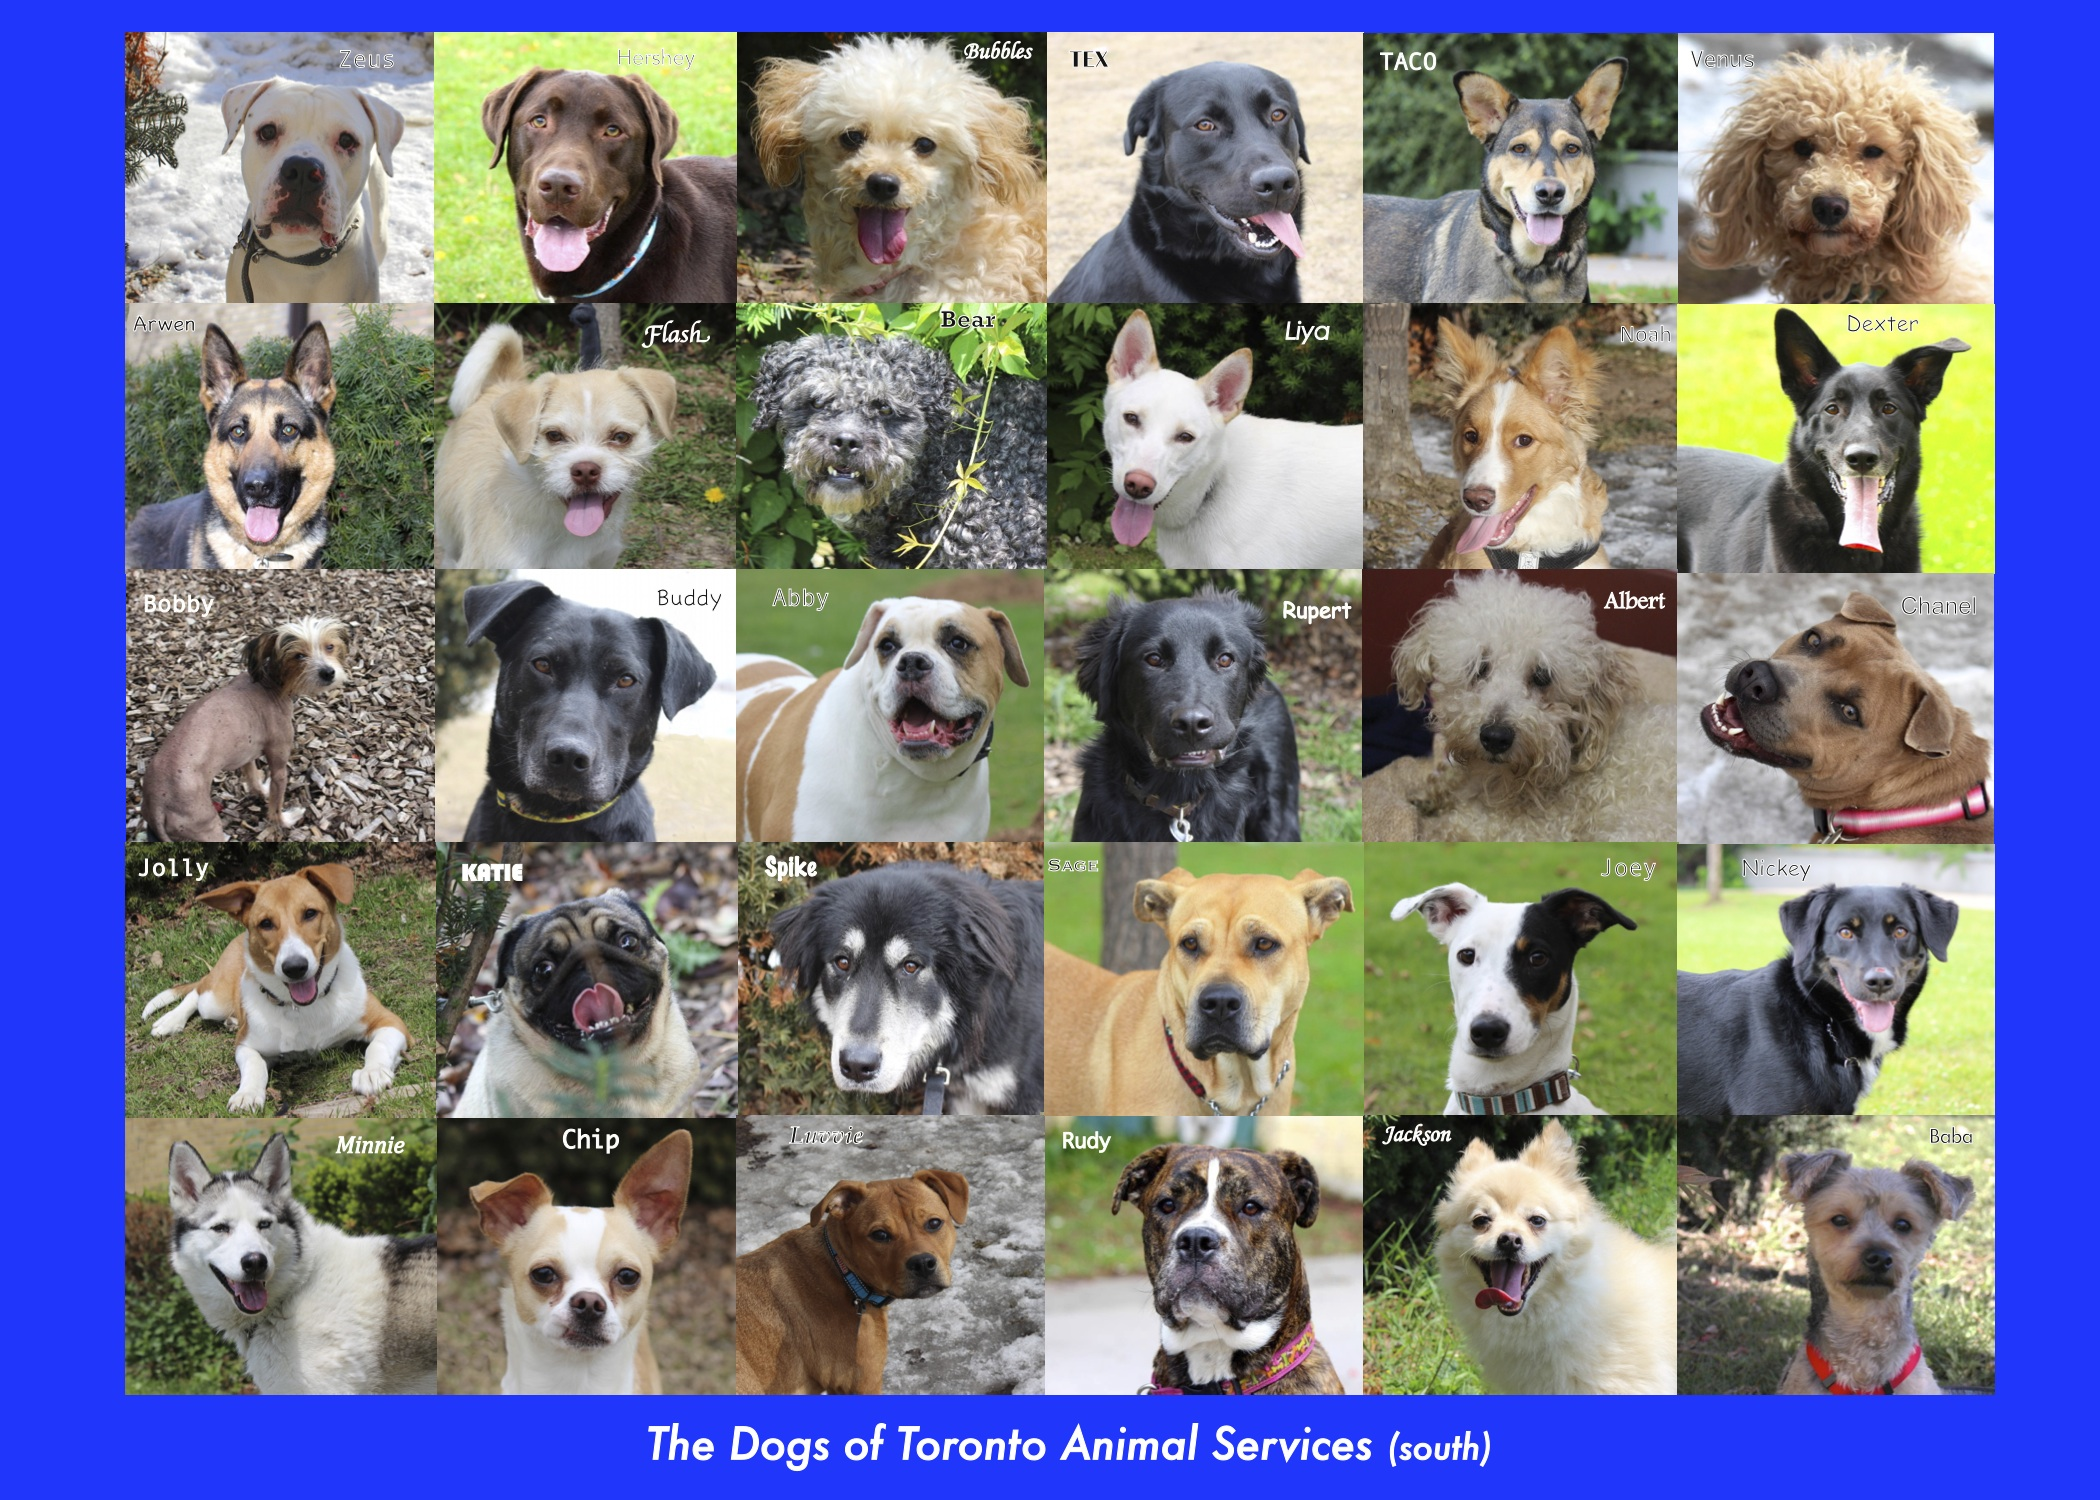 The Dogs of Toronto Animal Services